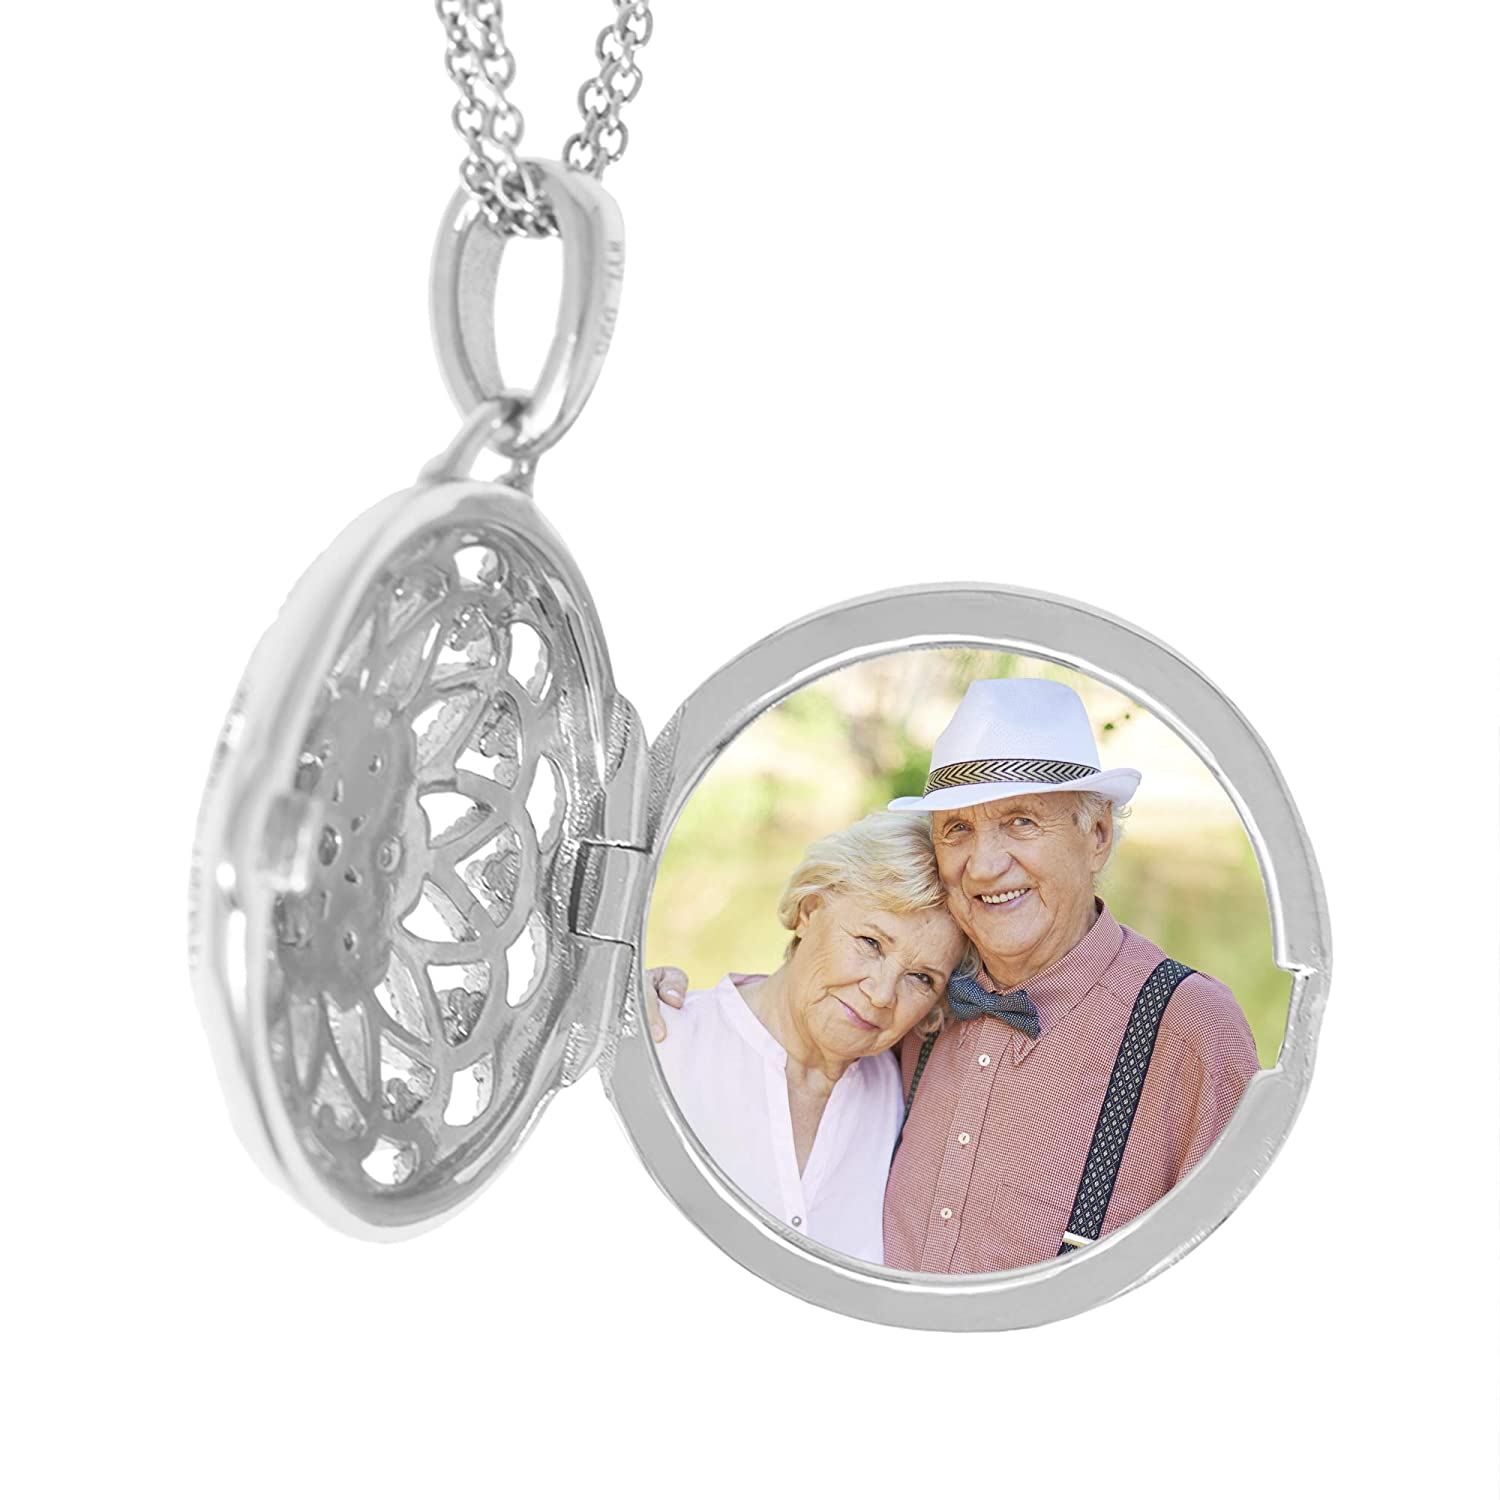 With You Lockets-Fine Sterling Silver-Custom Photo Locket Necklace-That Holds Pictures For Women-The Elaine